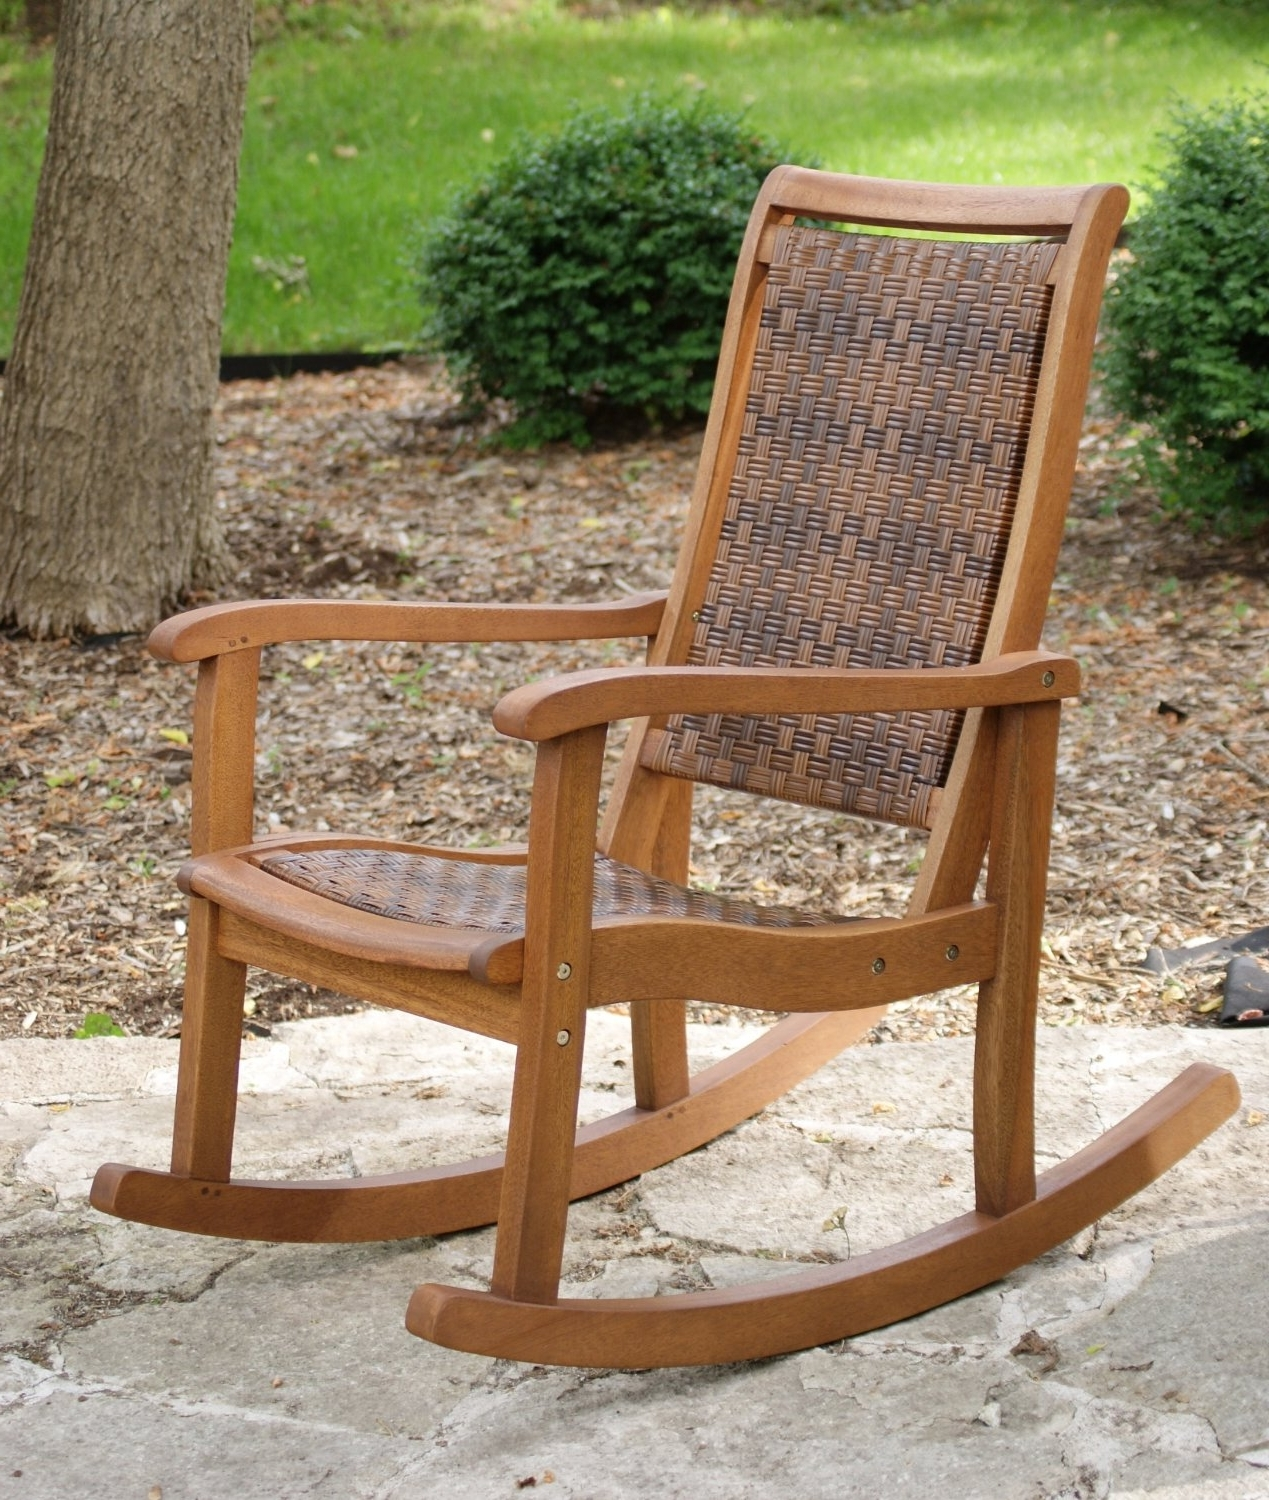 Most Recent Outdoor Wicker Rocking Chairs Regarding Great Rocking Patio Chairs Outdoor Wicker Rocking Chairs Patio (View 5 of 20)